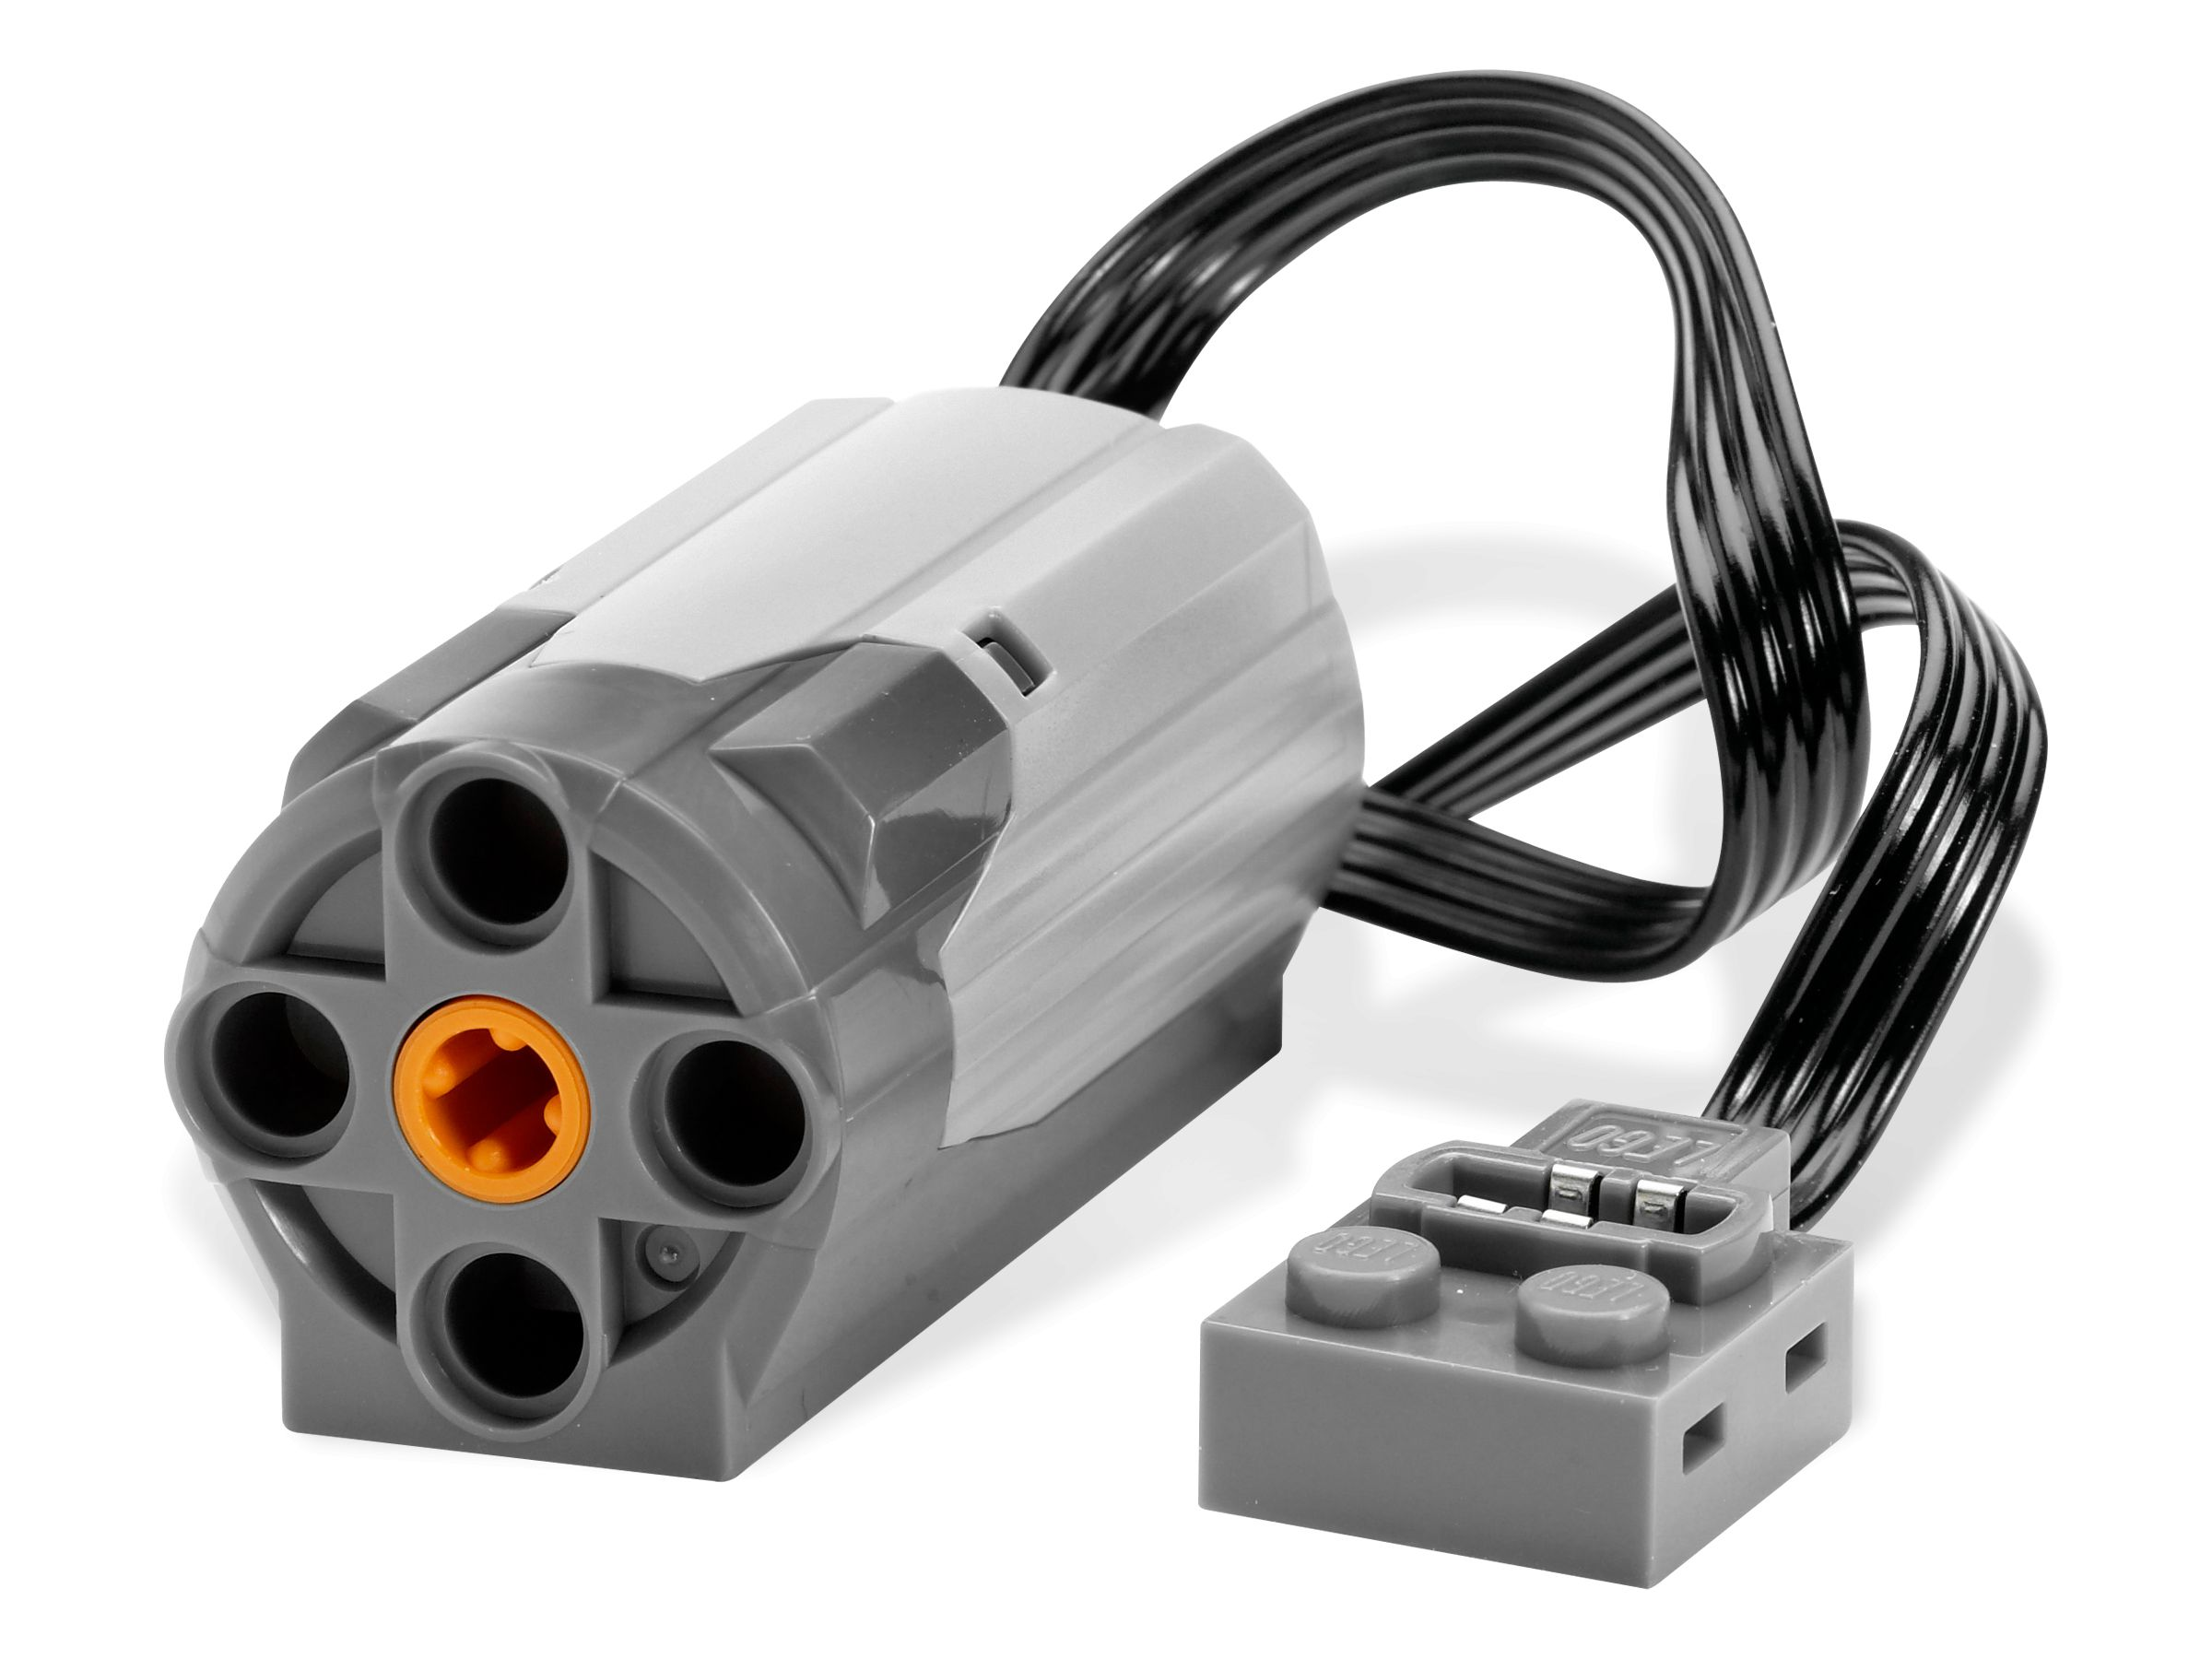 LEGO Power Functions 8883 LEGO® Power Functions M-Motor LEGO_8883.jpg